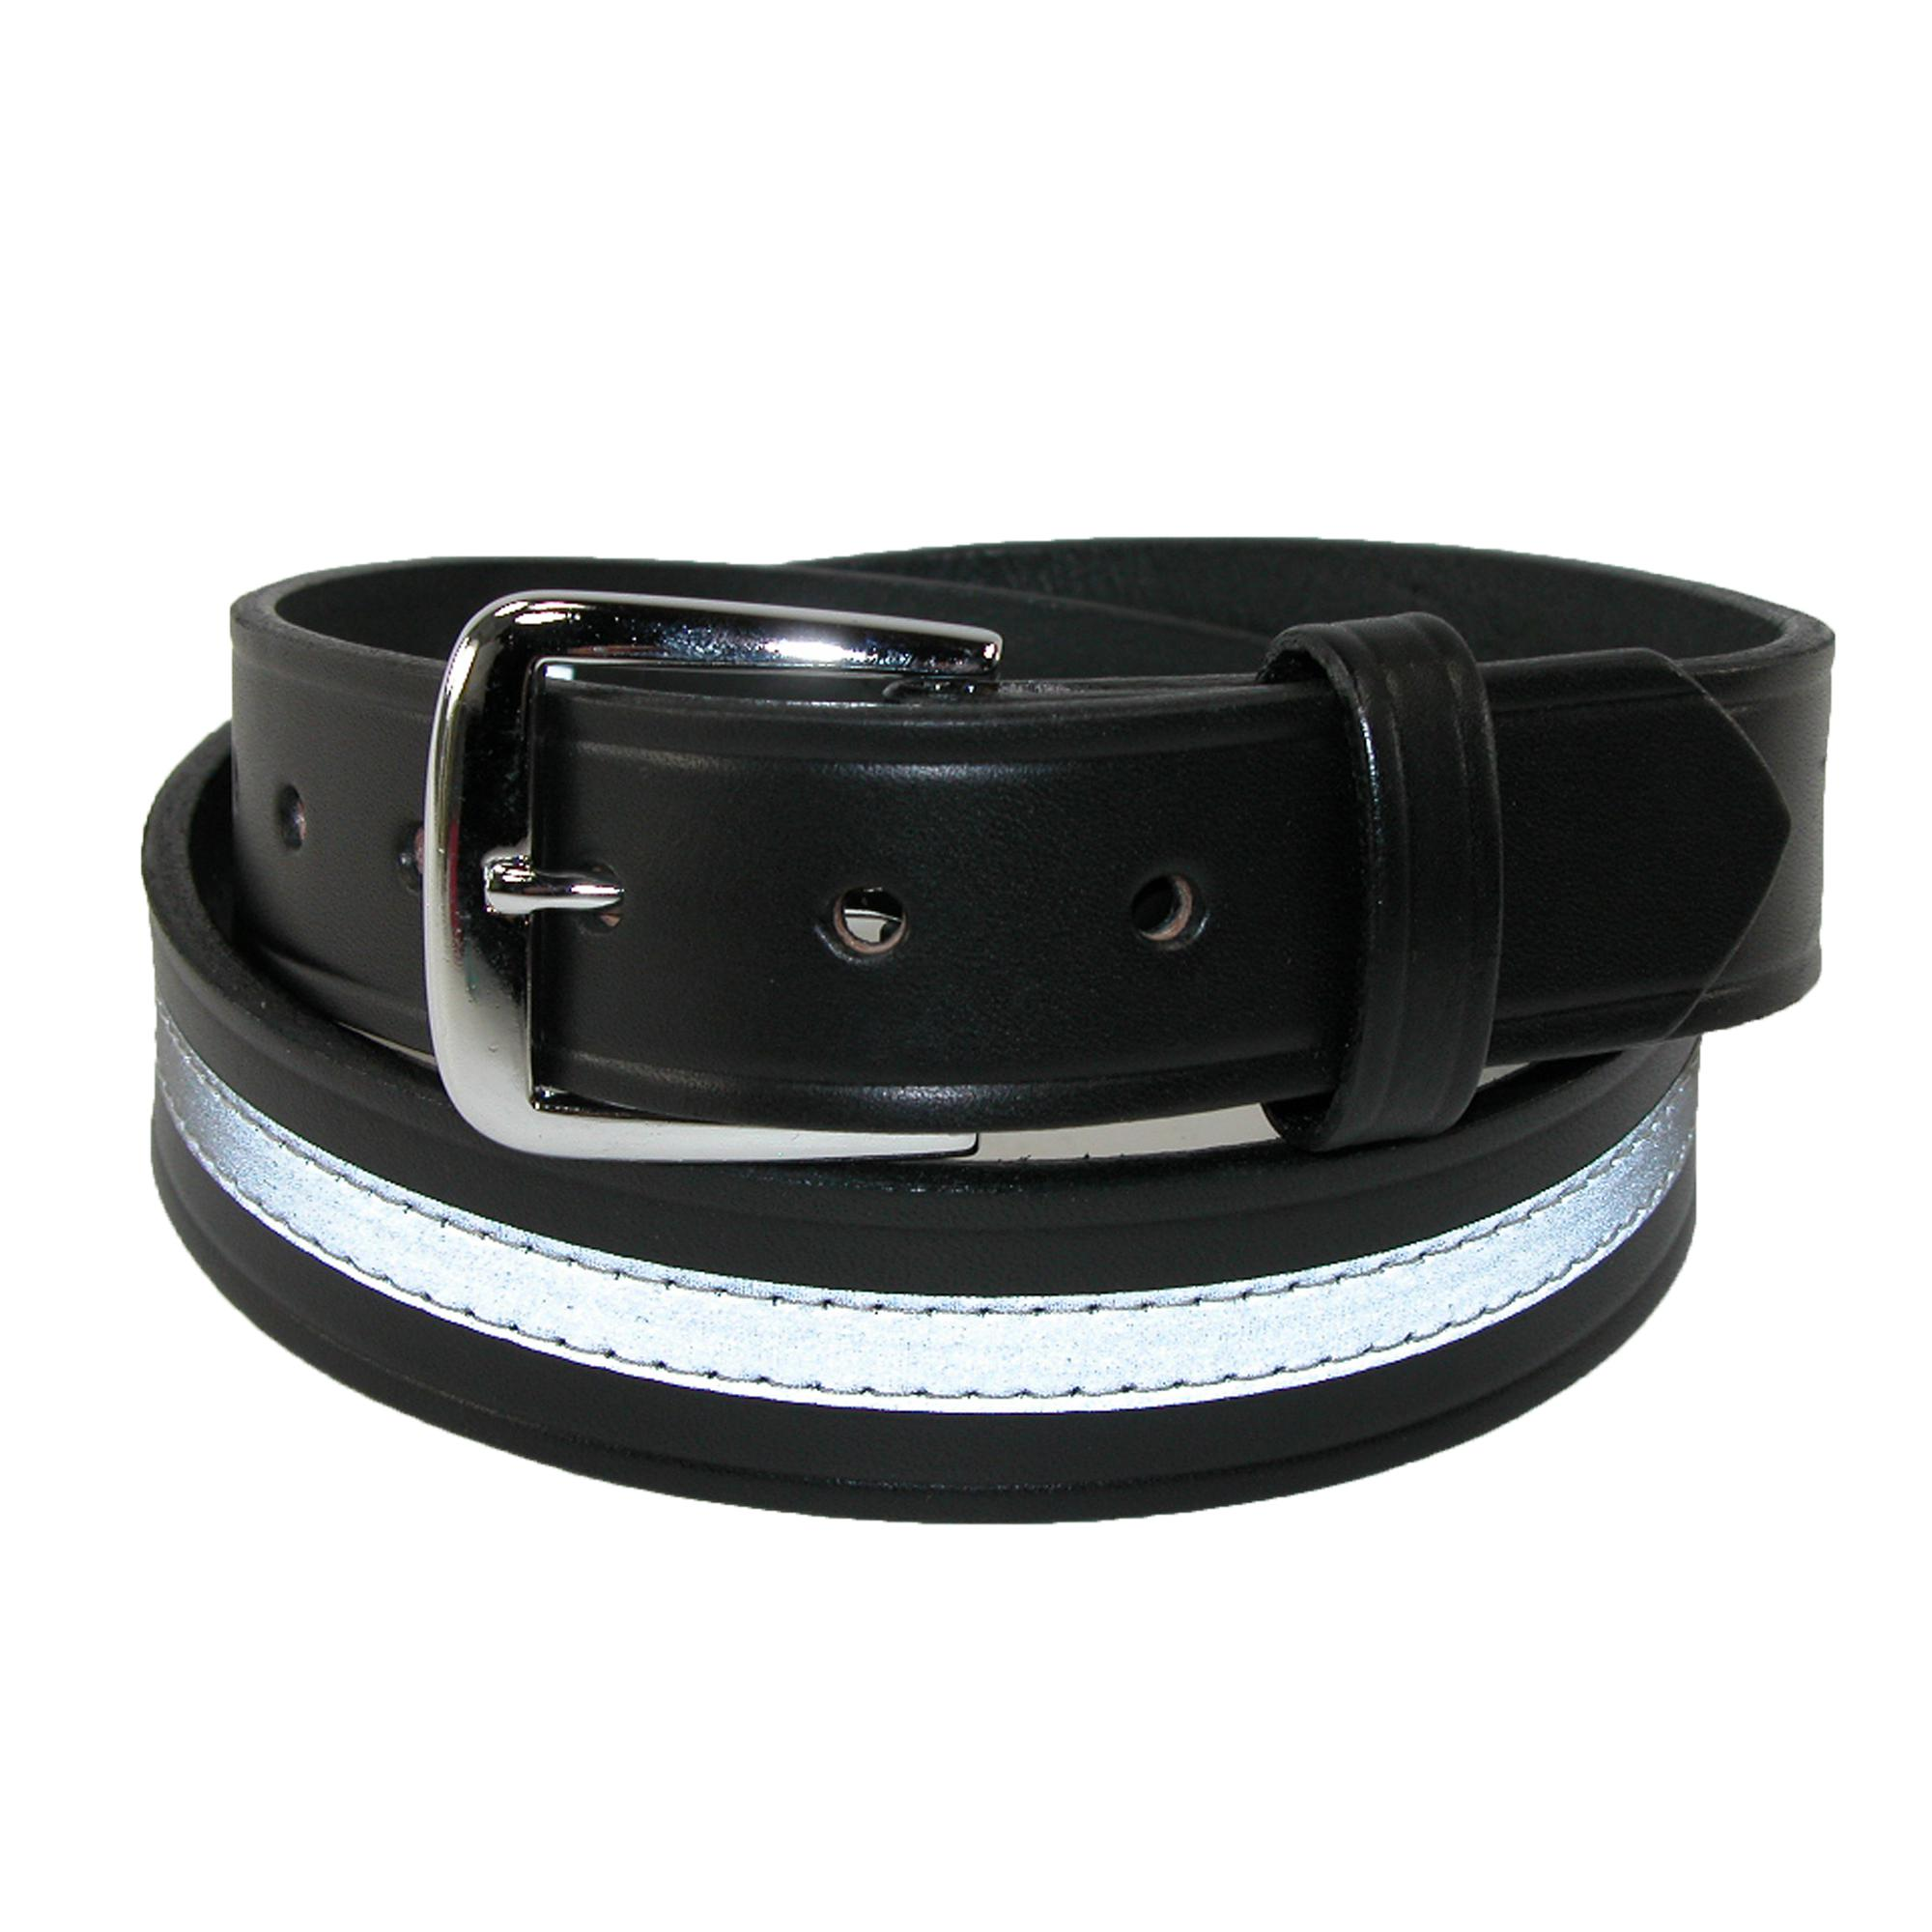 Boston Leather Men's Leather 1 1/2 Inch Reflective Work Belt